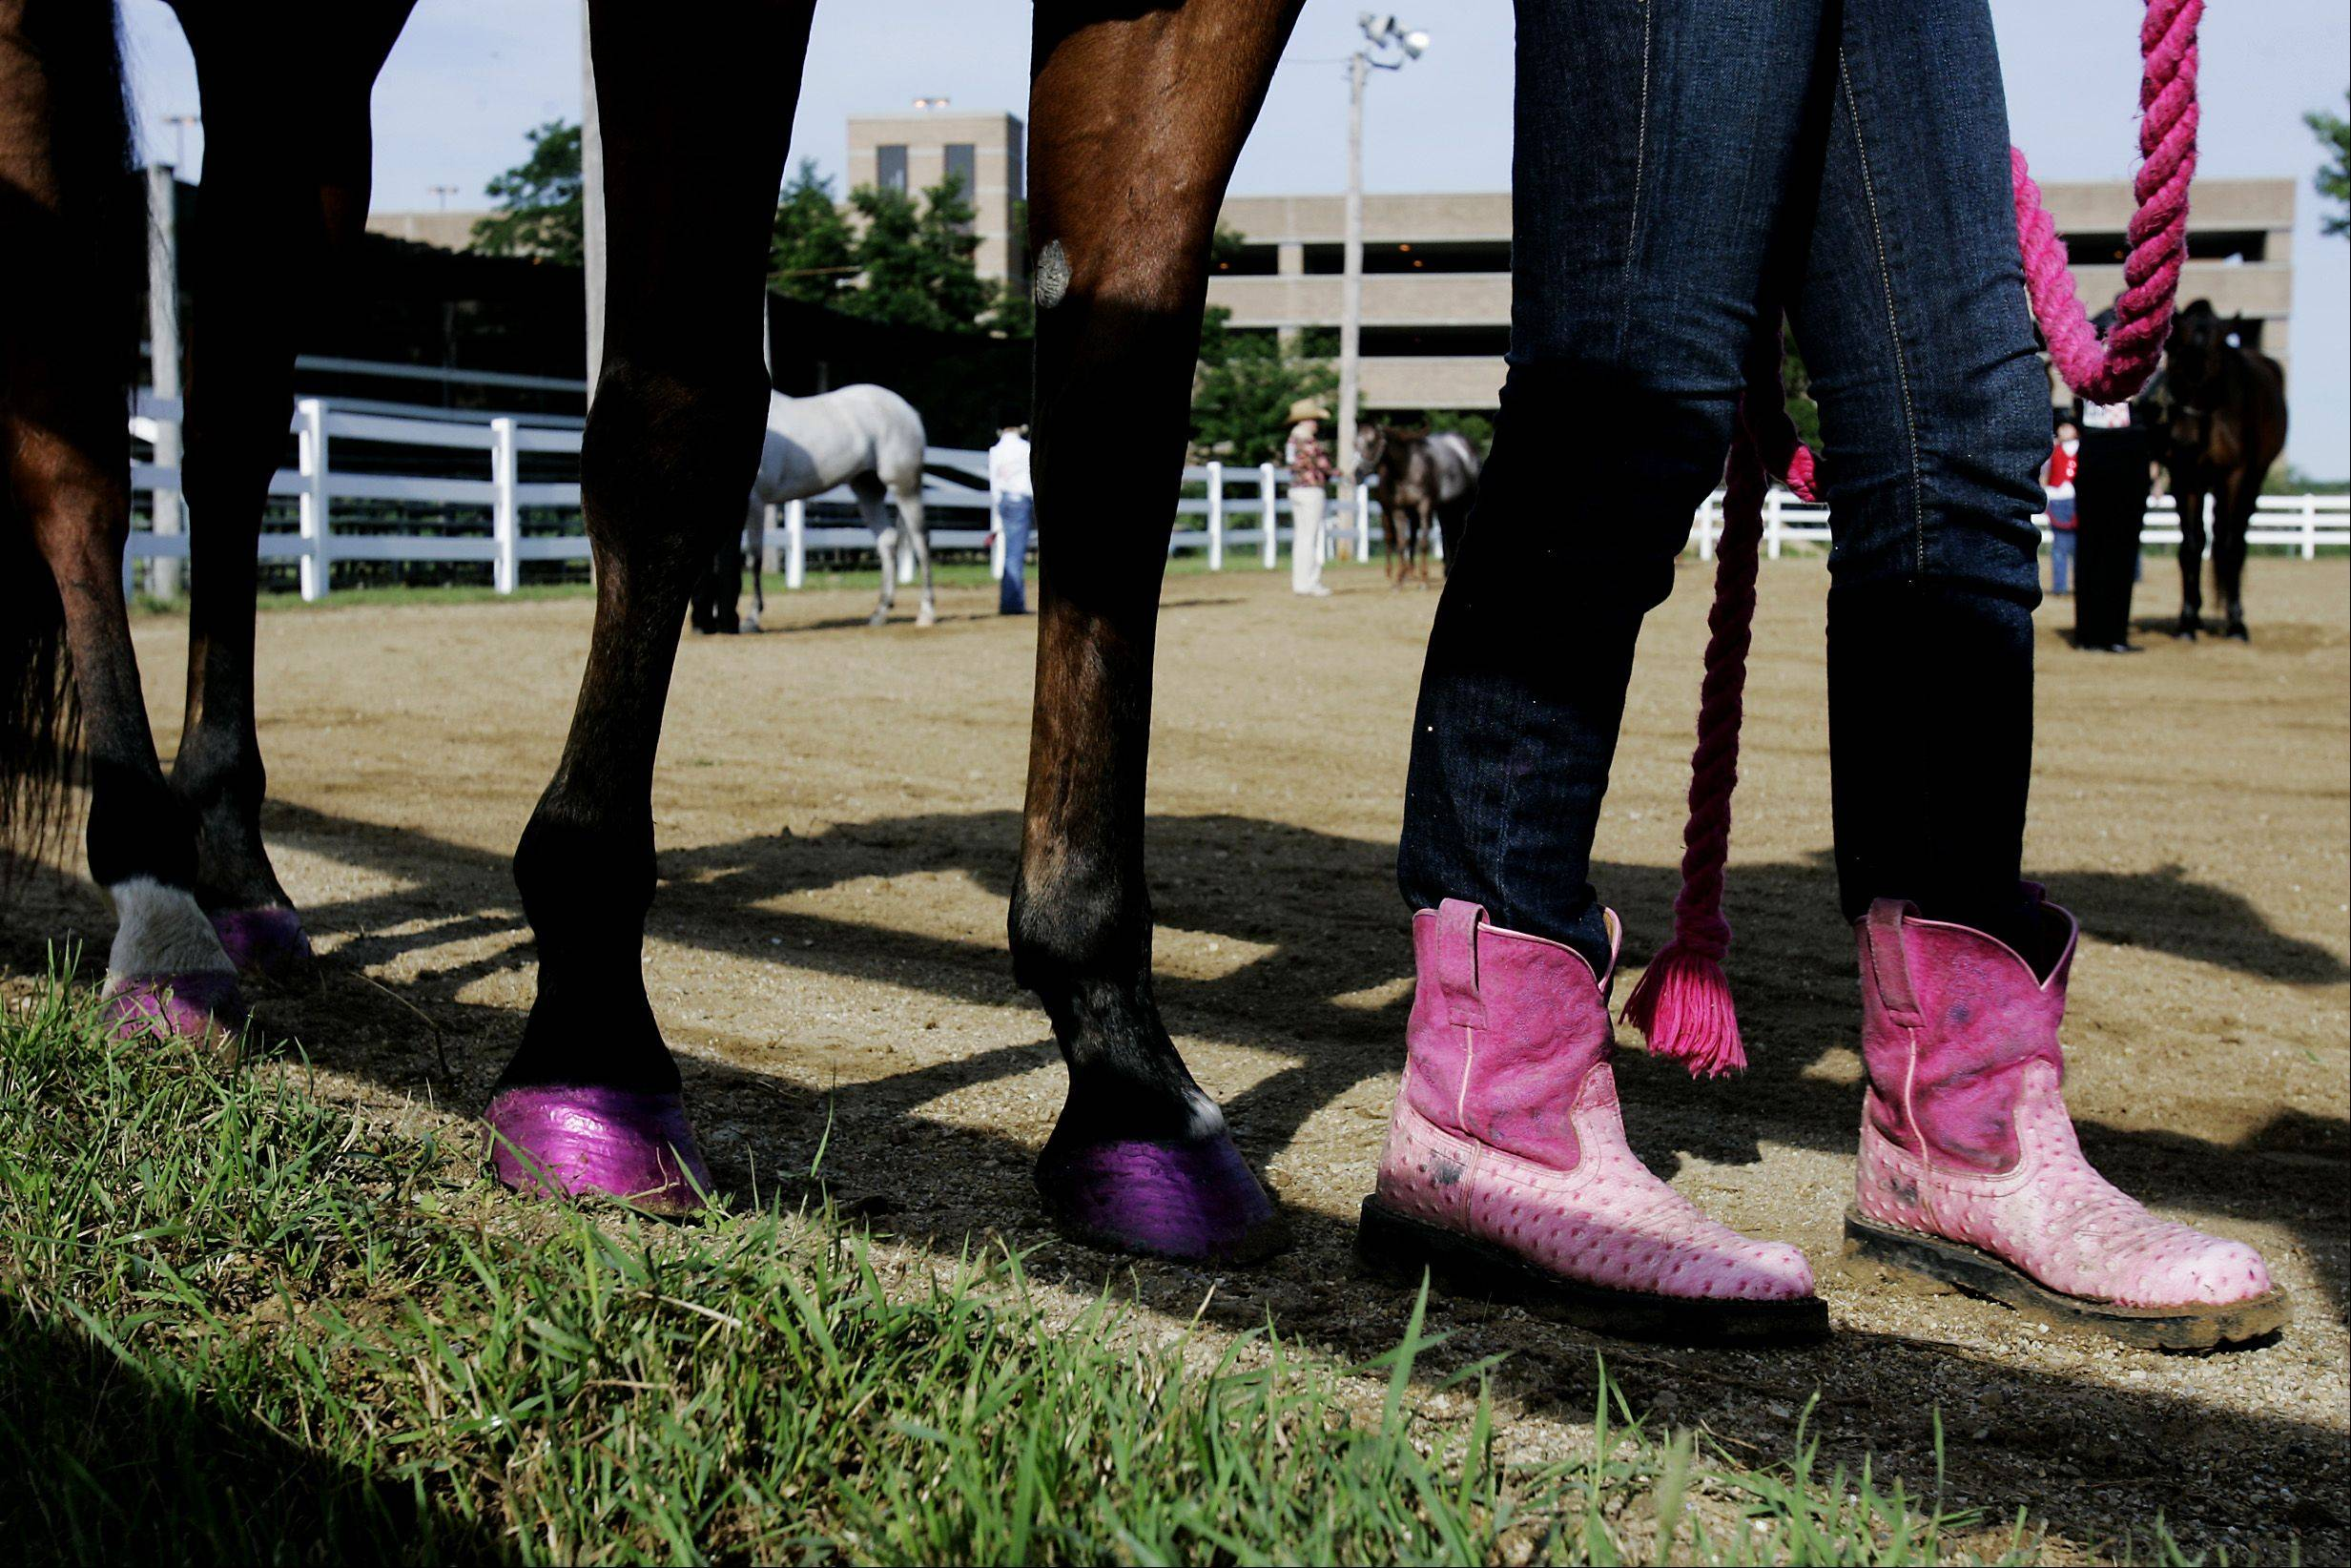 Members of DuPage County 4-H clubs ages 8 to 18 may participate in hundreds of open class entries. The Open Class Horse and Pony Show is scheduled for 8 a.m. Saturday and Sunday at the DuPage County Fair.